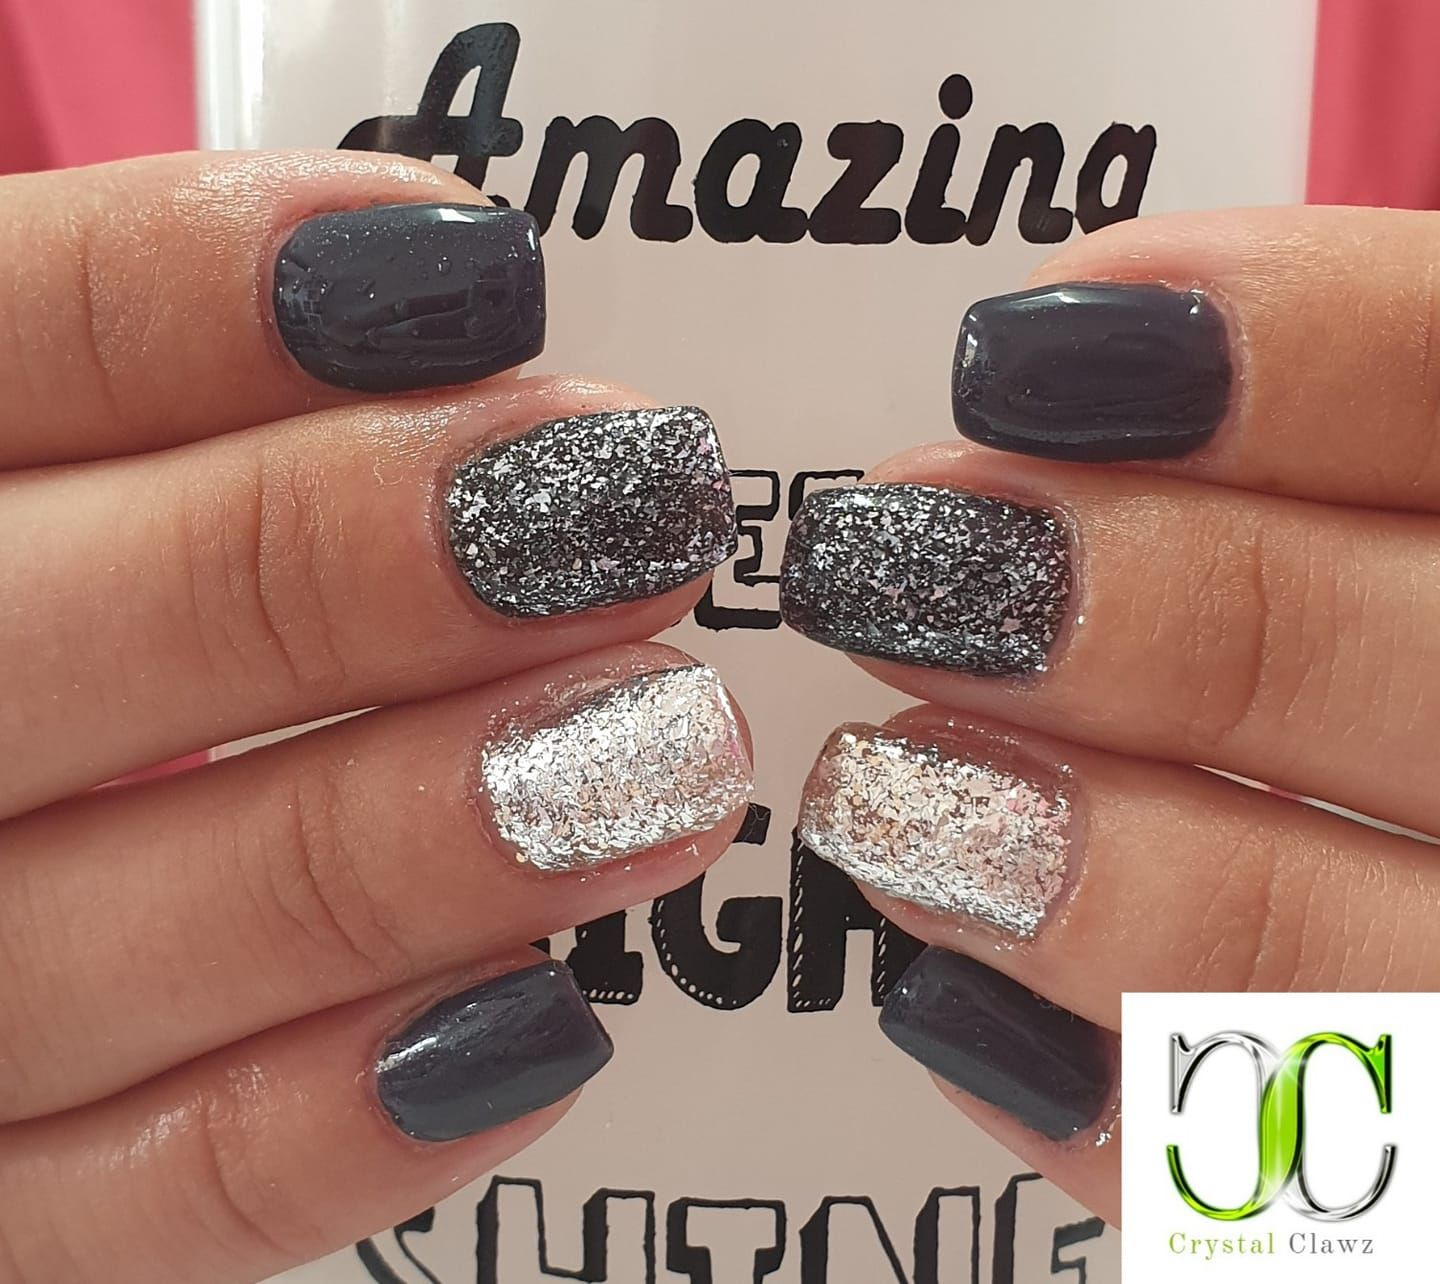 Black With Our Amazing Crystal Clawz Diamond Gel Polishes Love Them Together Crystalclawz Bestgelbrand Bestgel Bestge Nails Swag Nails Nail Art Supplies